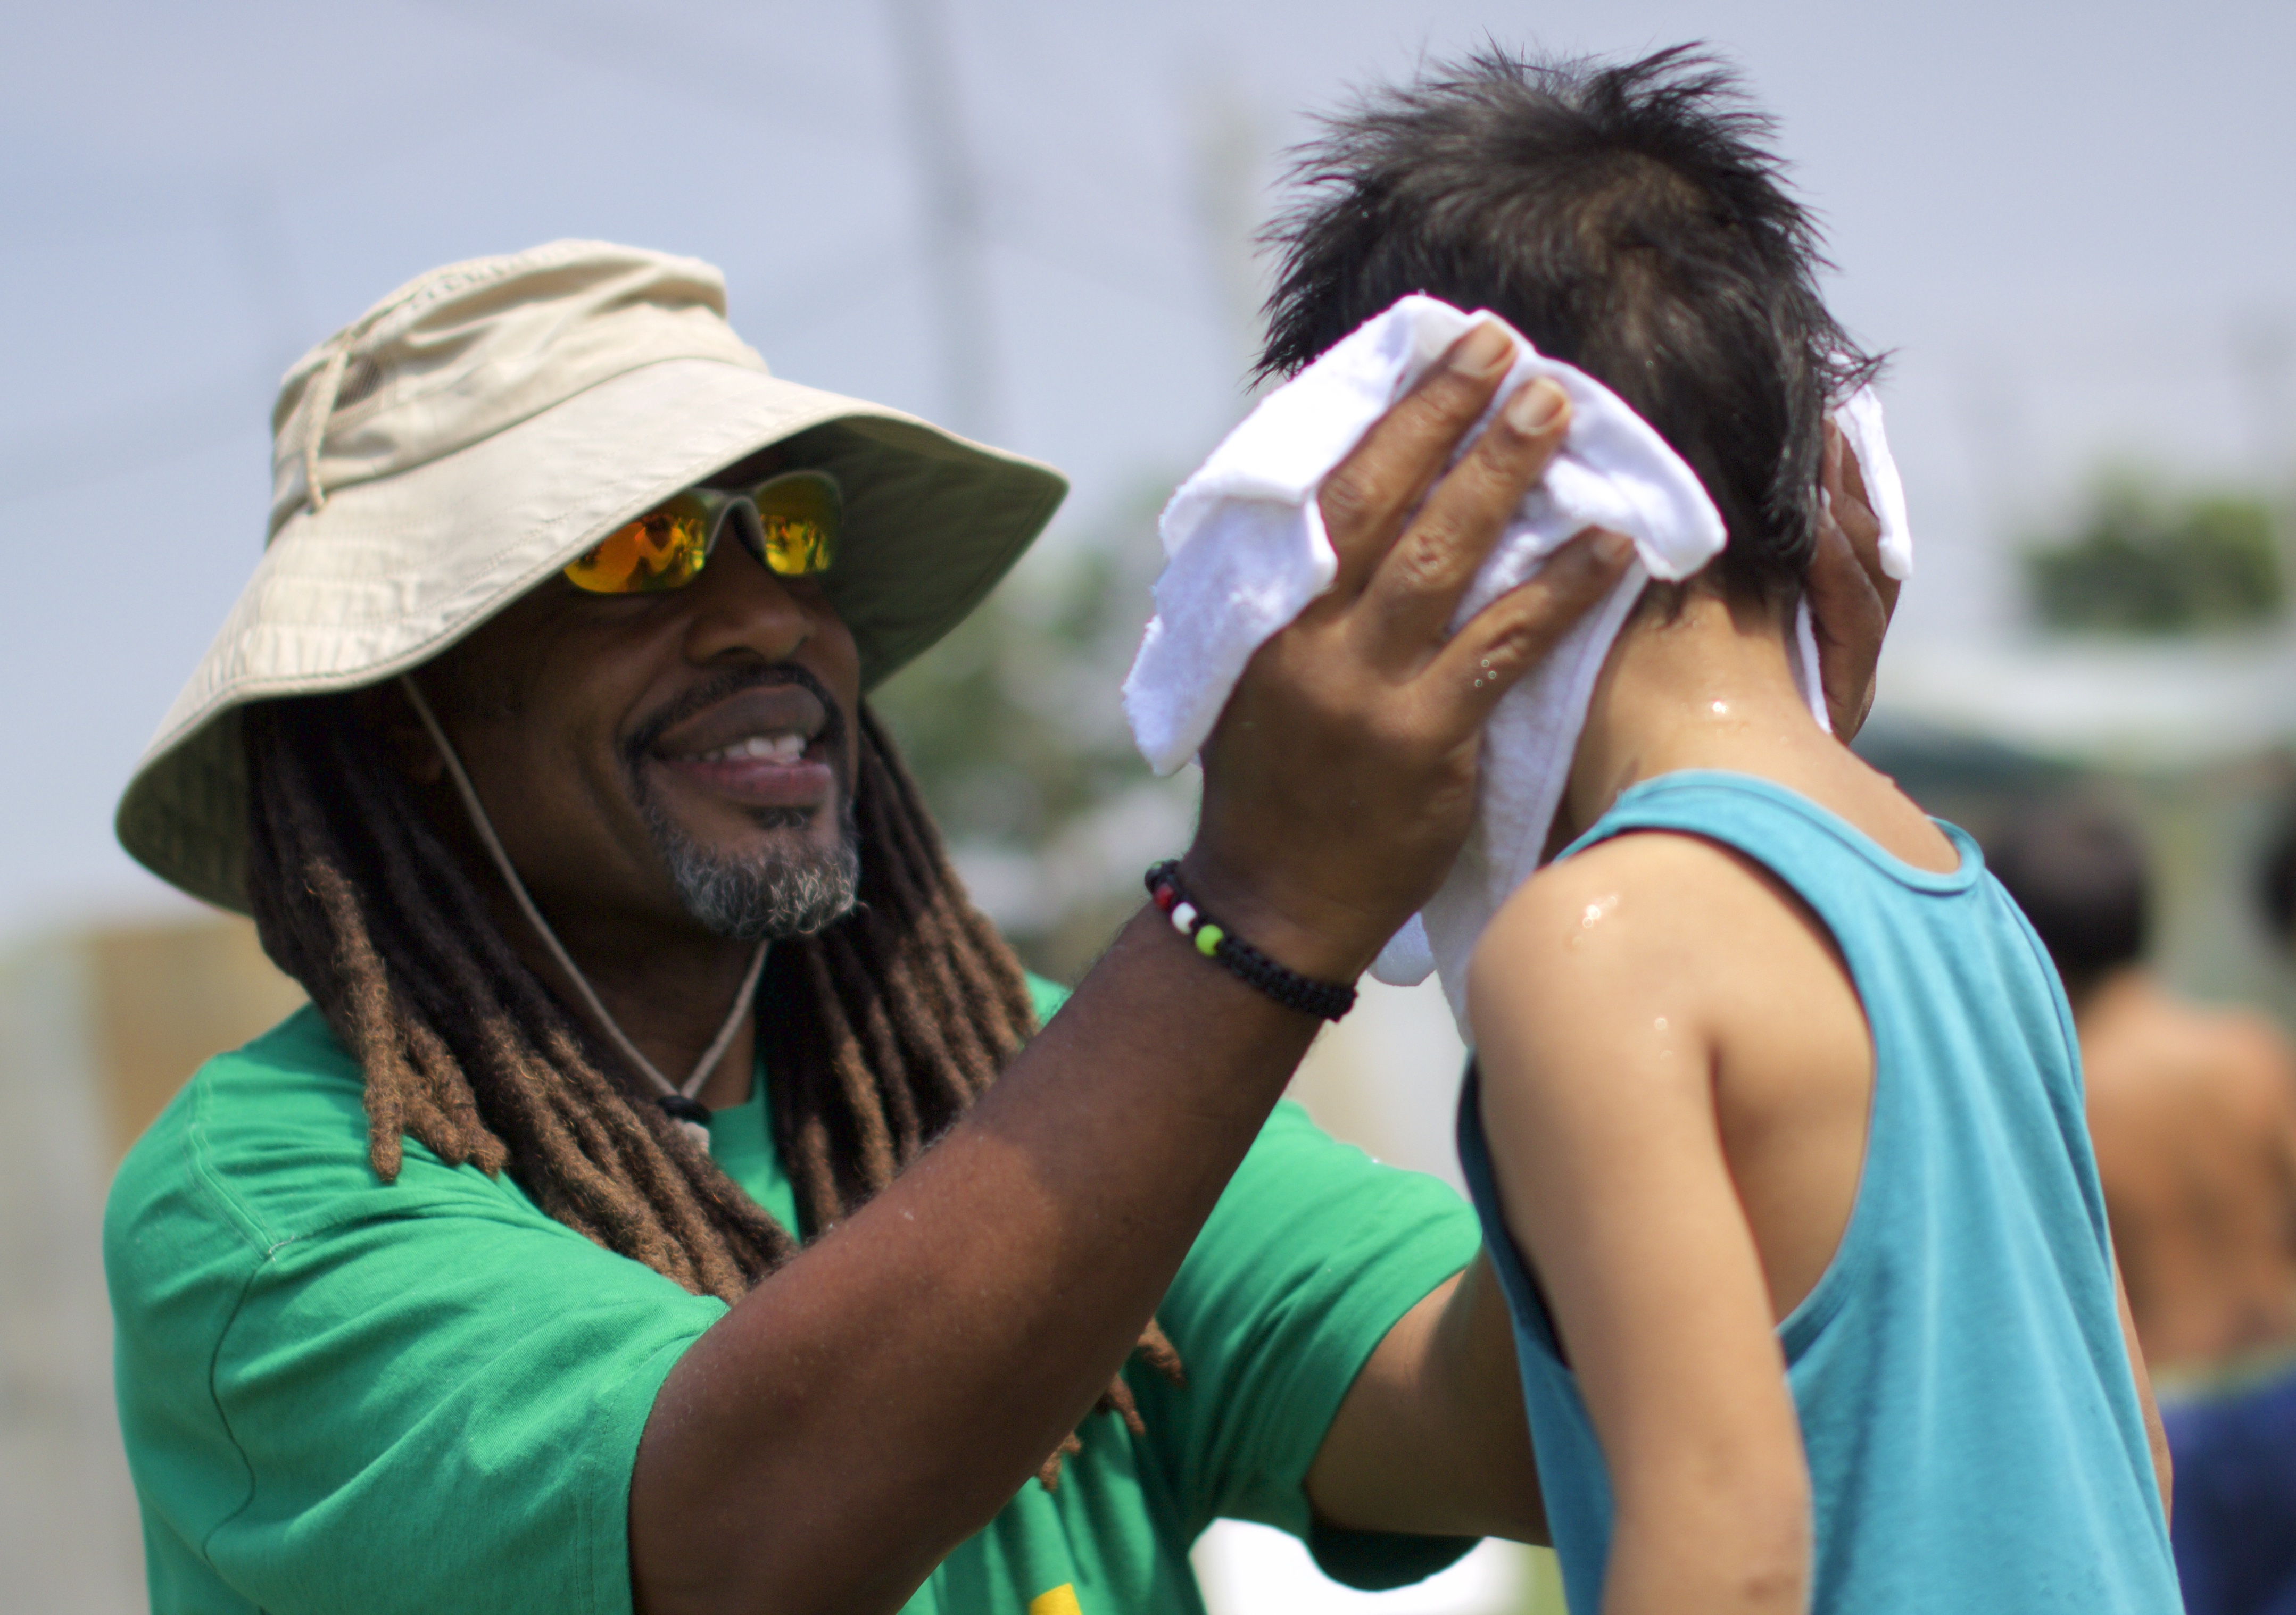 A man in a hat and dreadlocks smiles as he dries the hair of a small boy. Credit John Christian Fjellestad, Flickr.